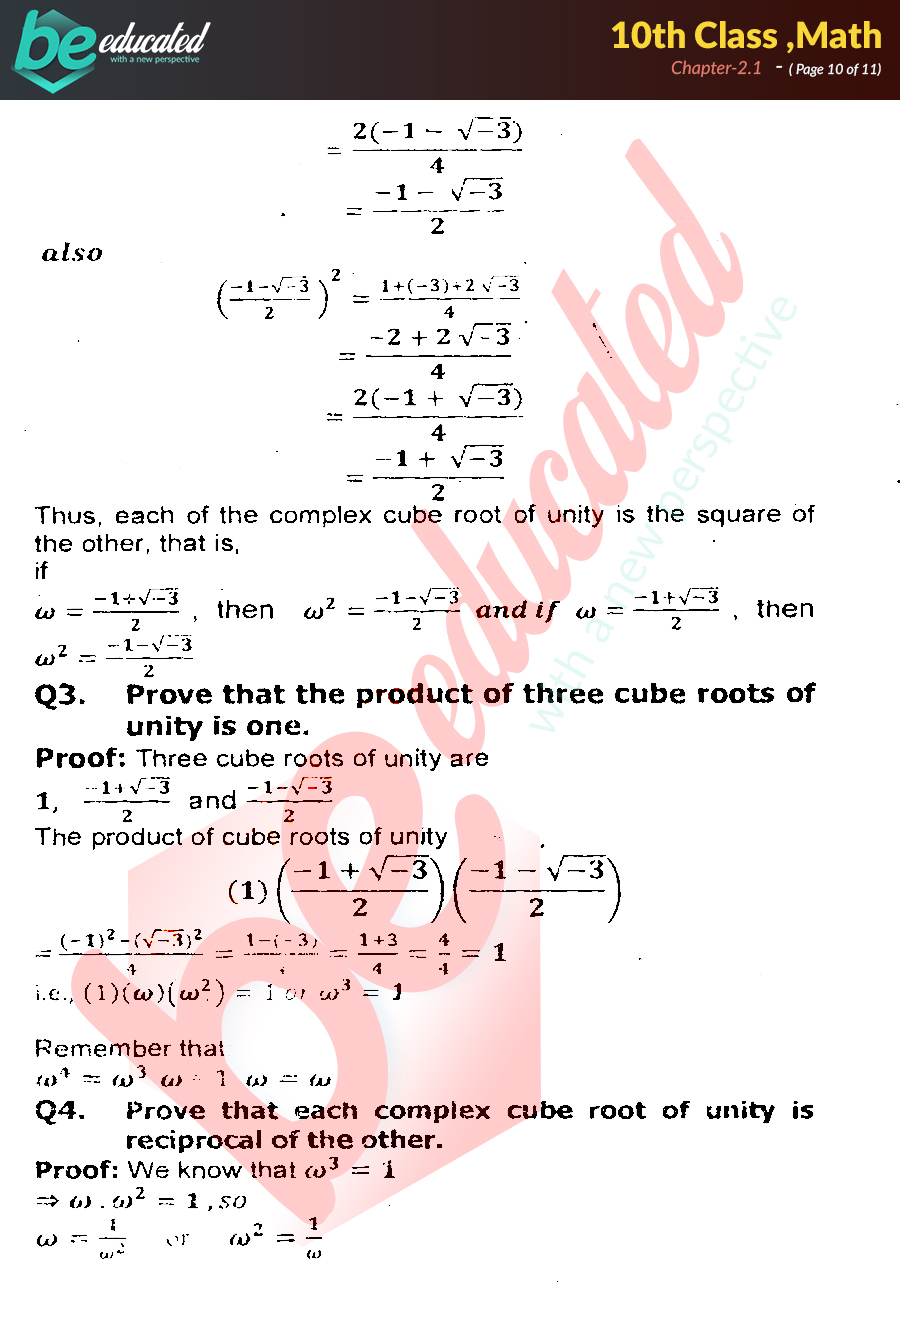 Exercise 2 1 Math 10th Class Notes - Matric Part 2 Notes